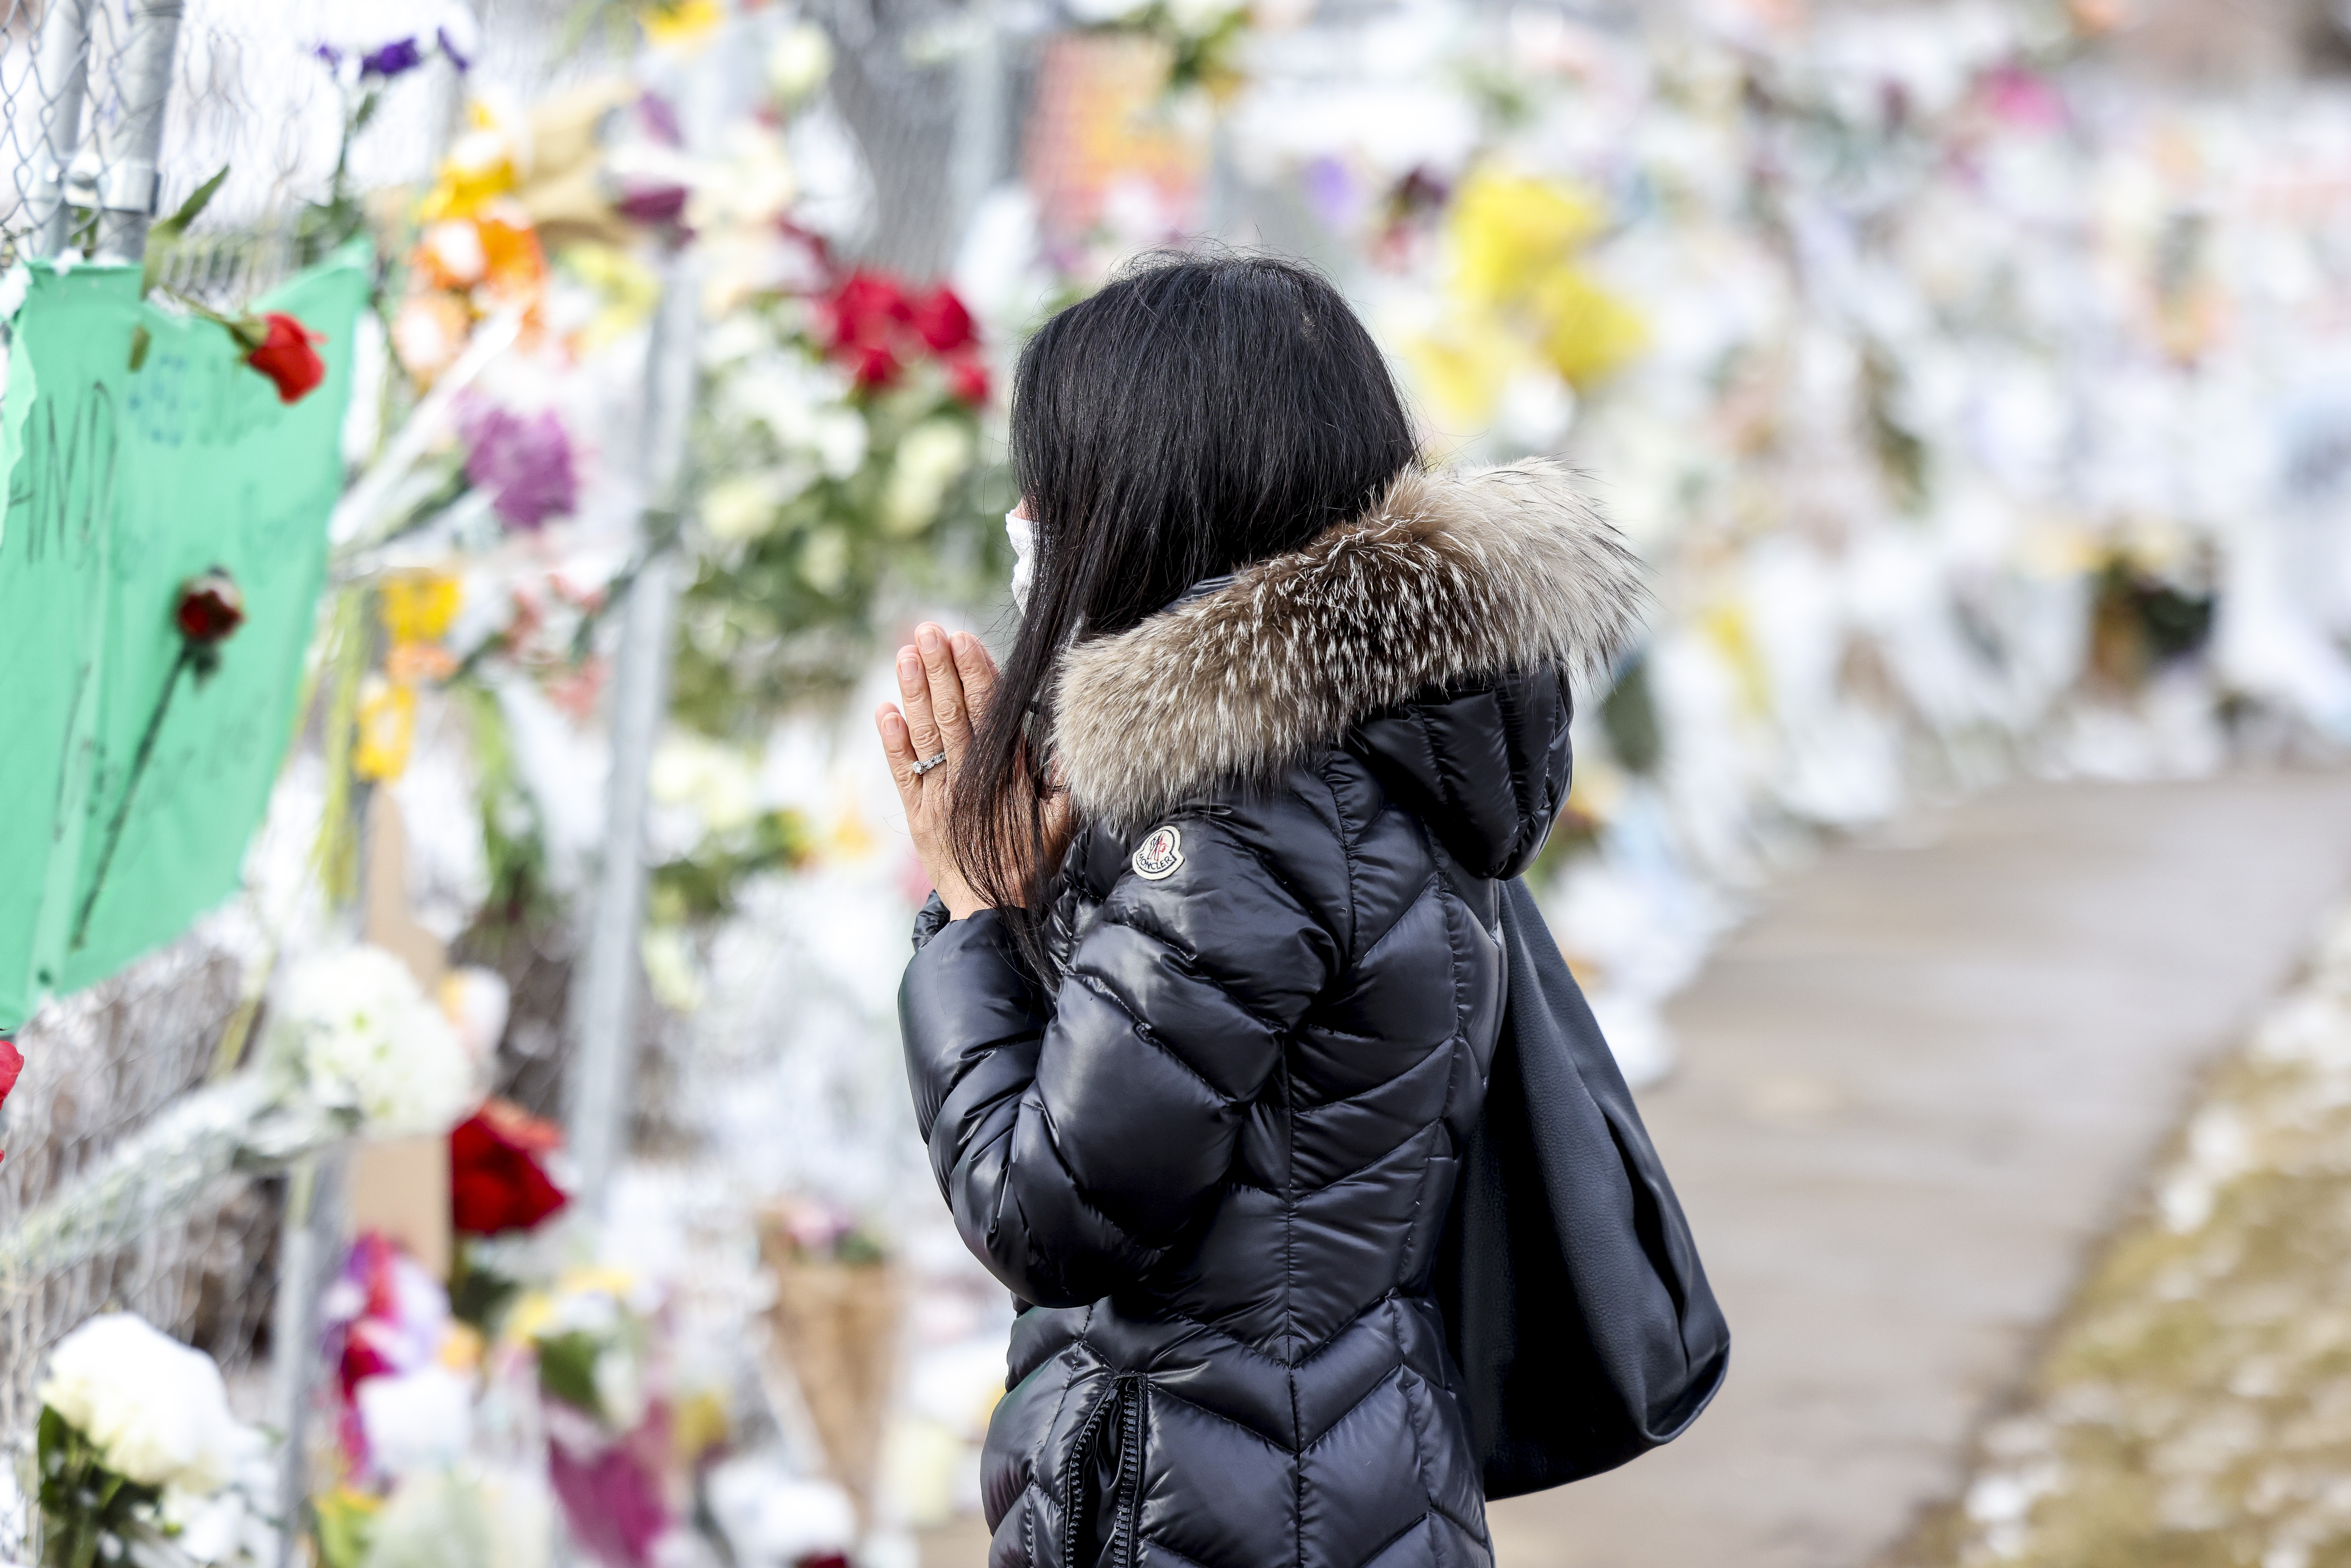 Takoua Debeche prays at a makeshift memorial for the victims of a mass shooting outside a King Soopers grocery store on March 24, 2021 in Boulder, Colorado.